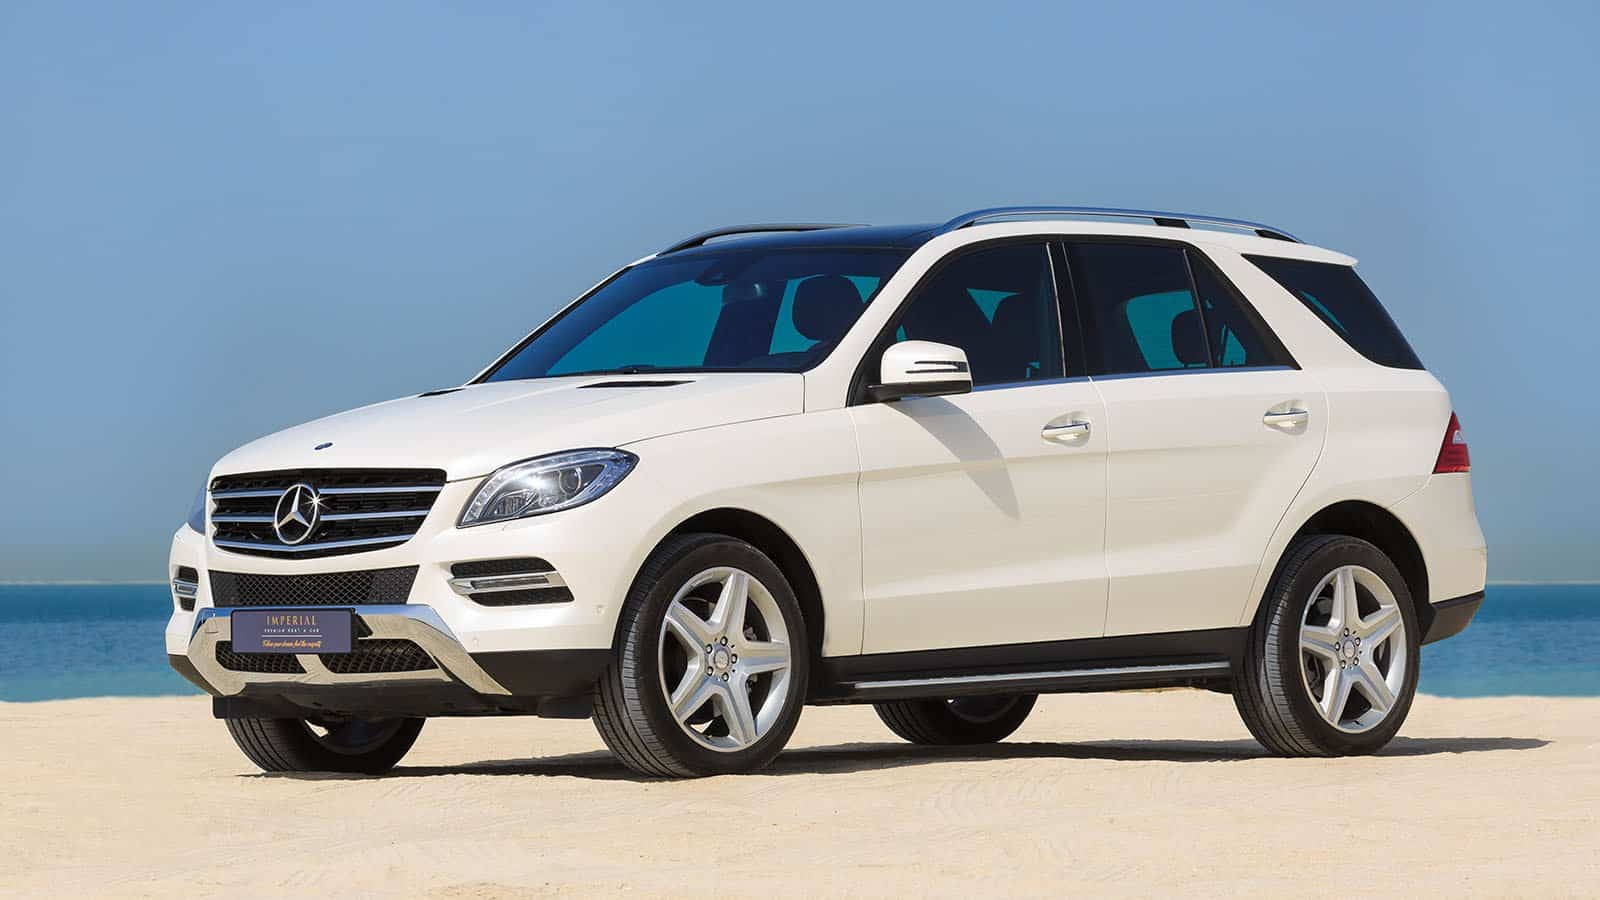 2013 Mercedes Benz Ml350 Upcomingcarshq Com